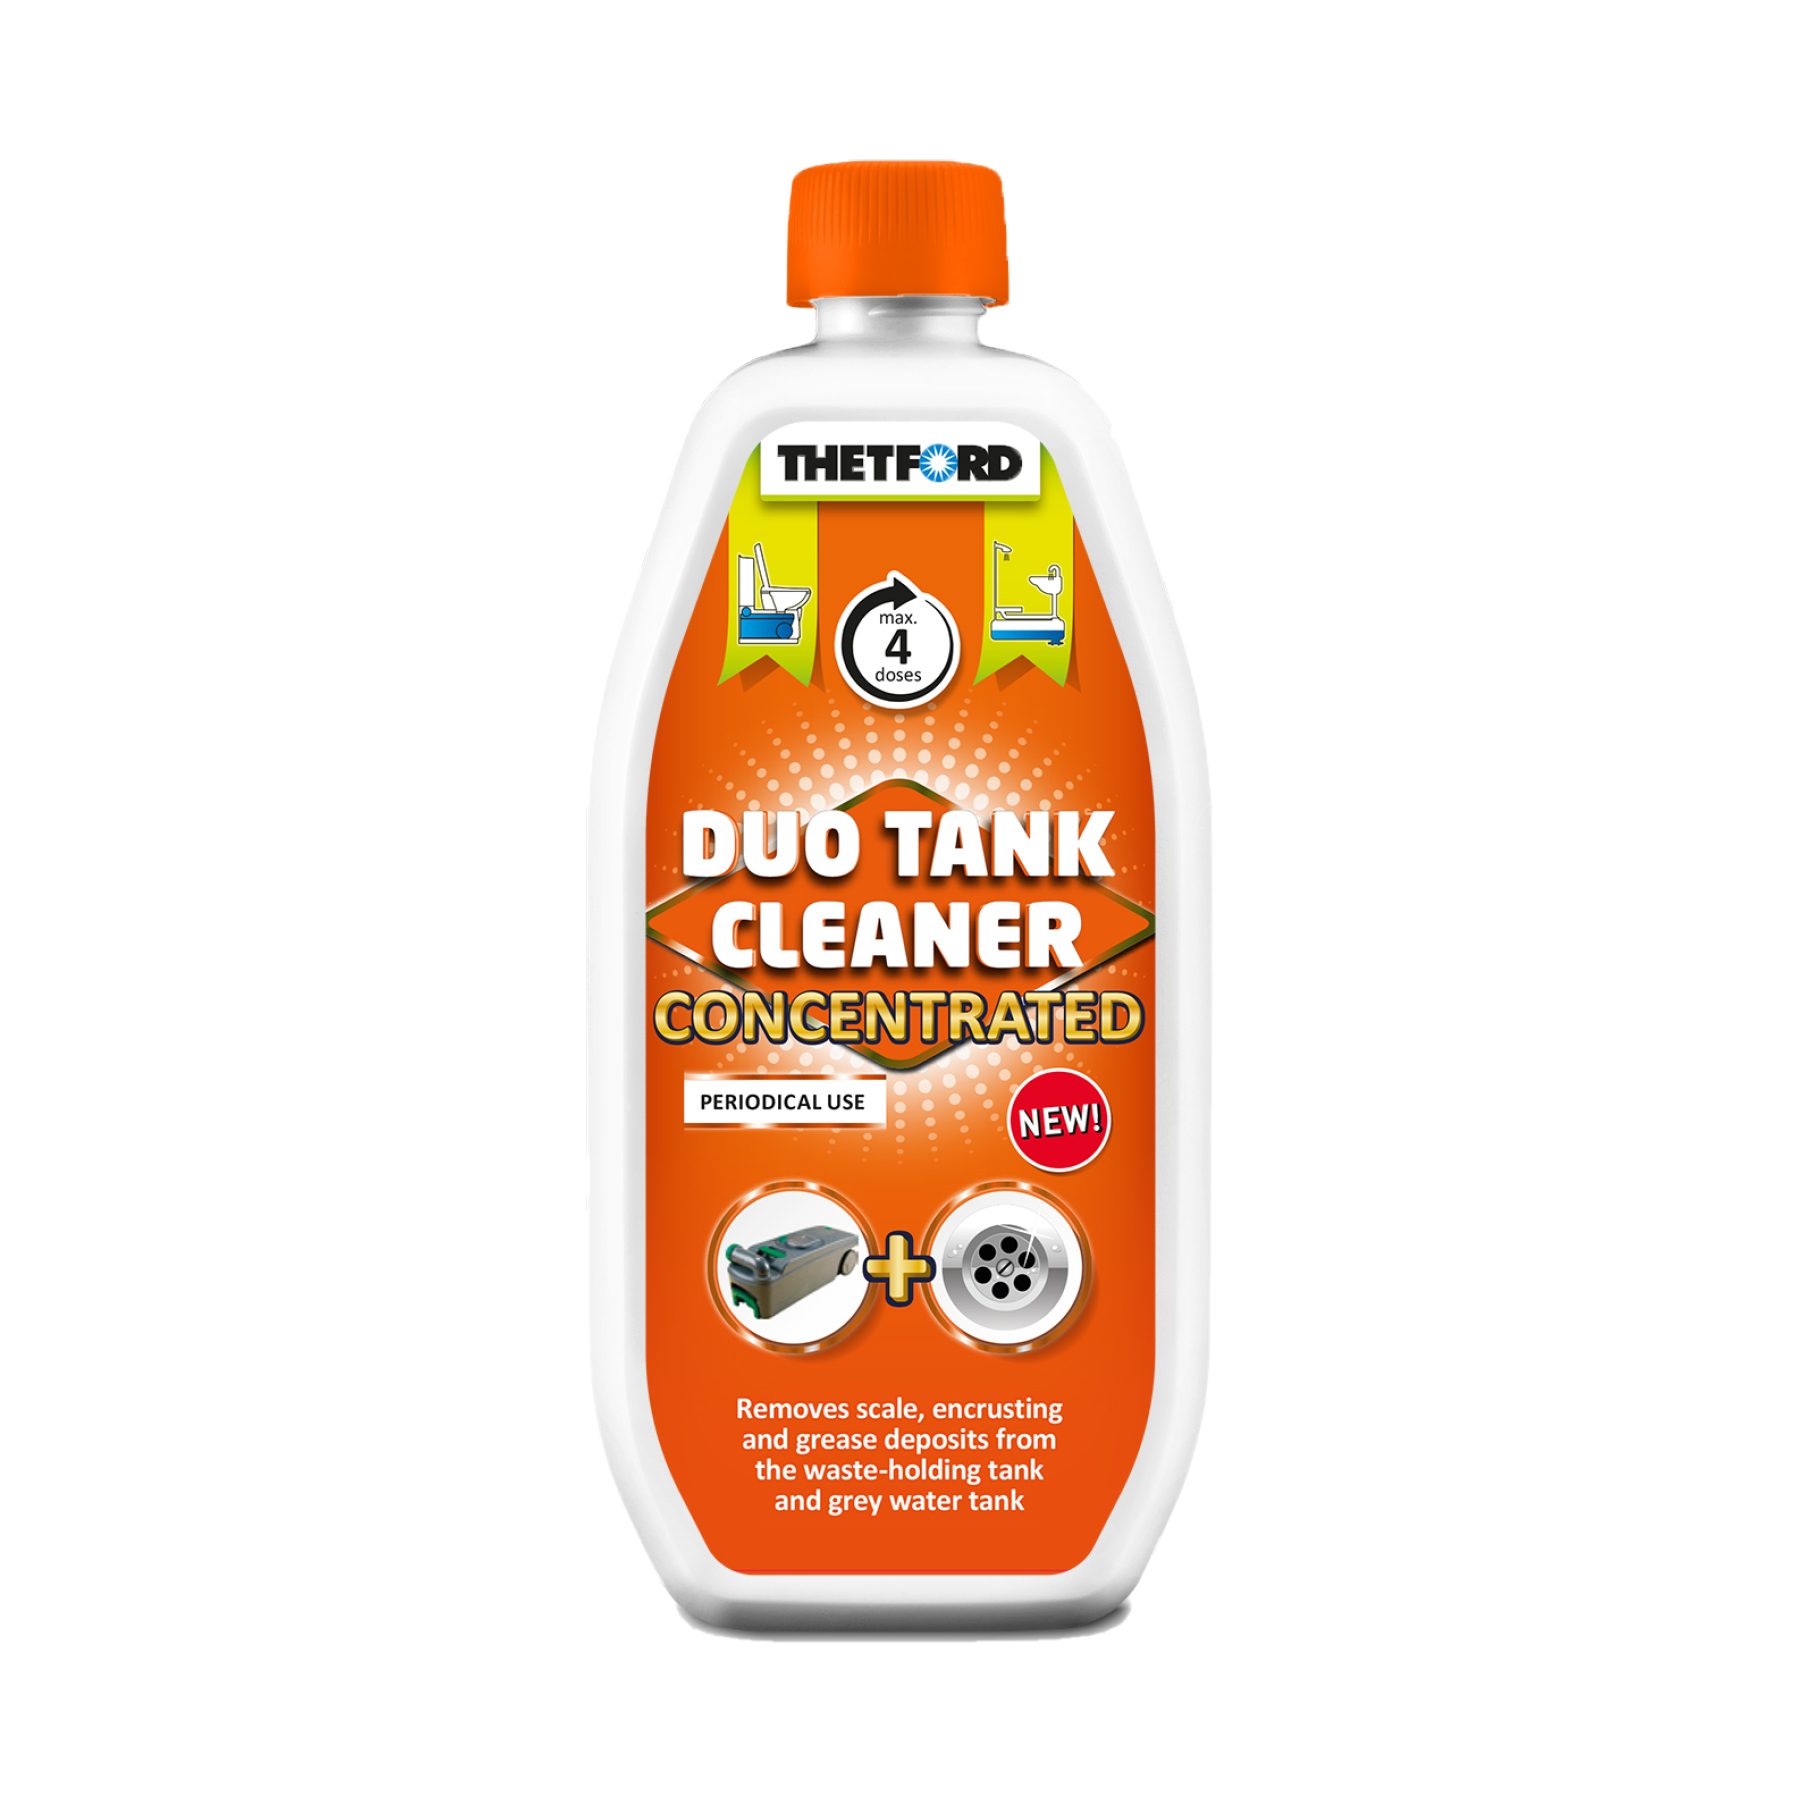 DUO TANK CLEANER CONCENTRATED – 800ml